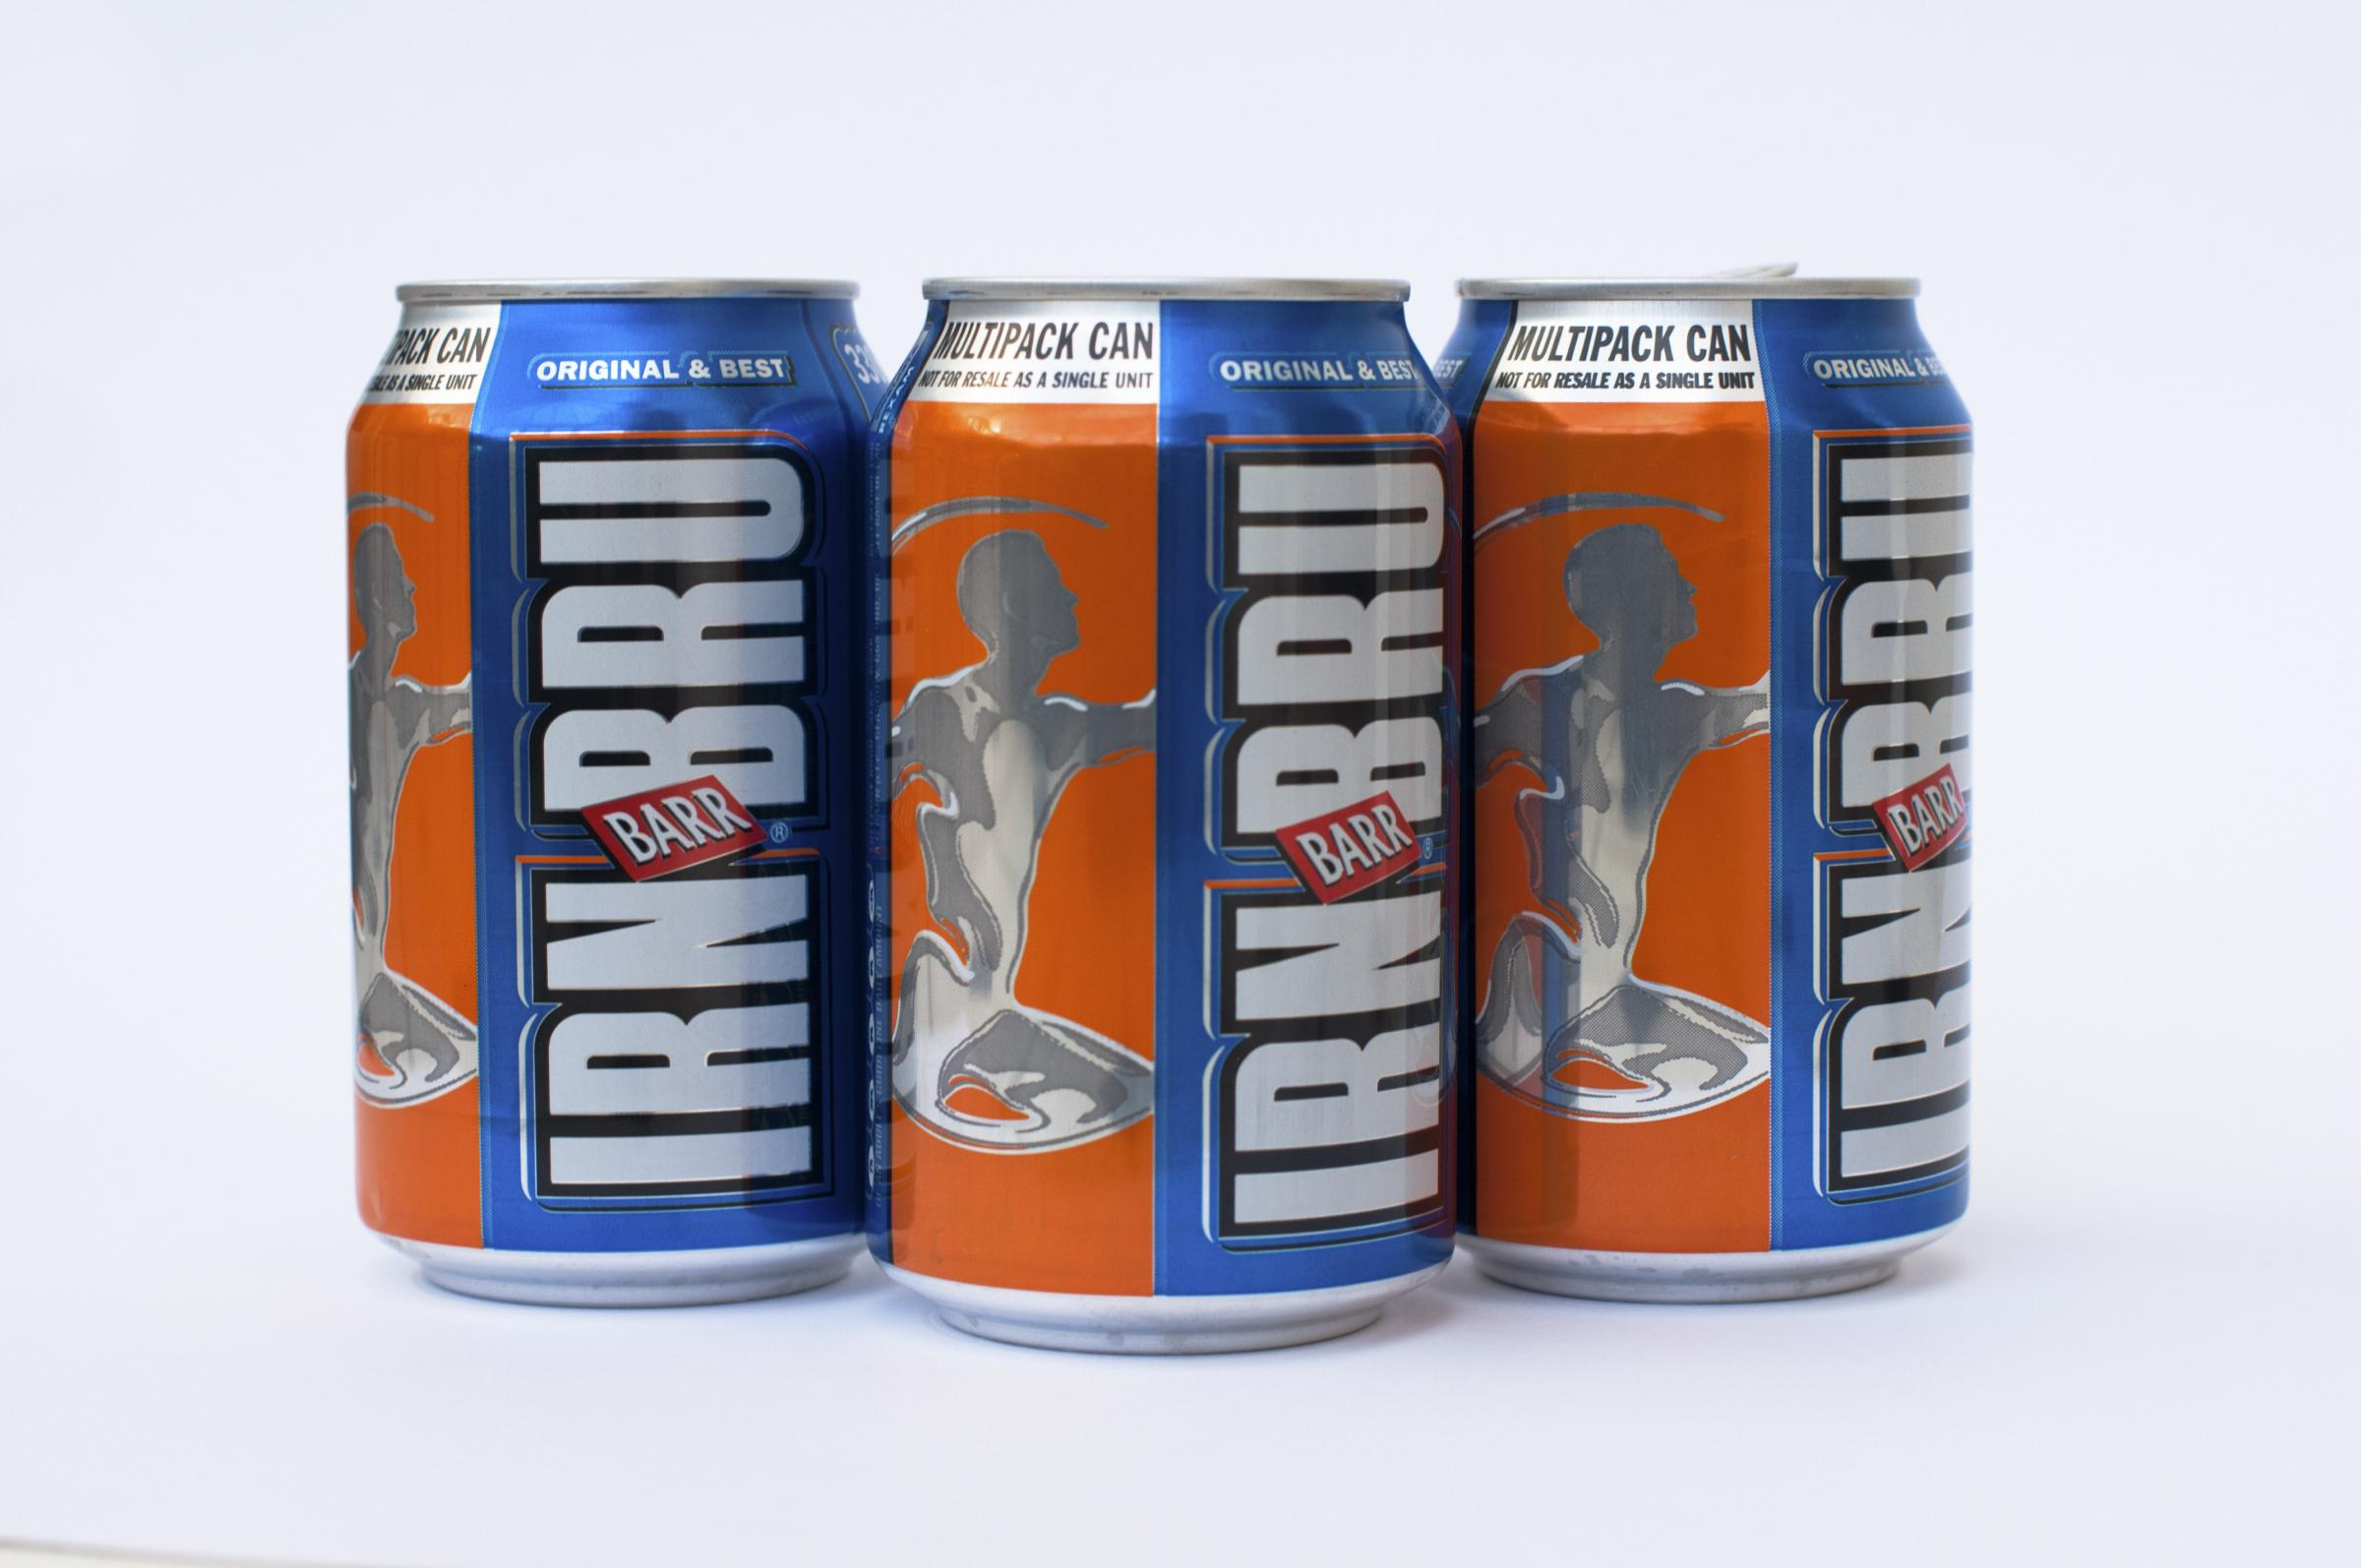 AG Barr shocked fans with an Irn-Bru recipe change in 2018